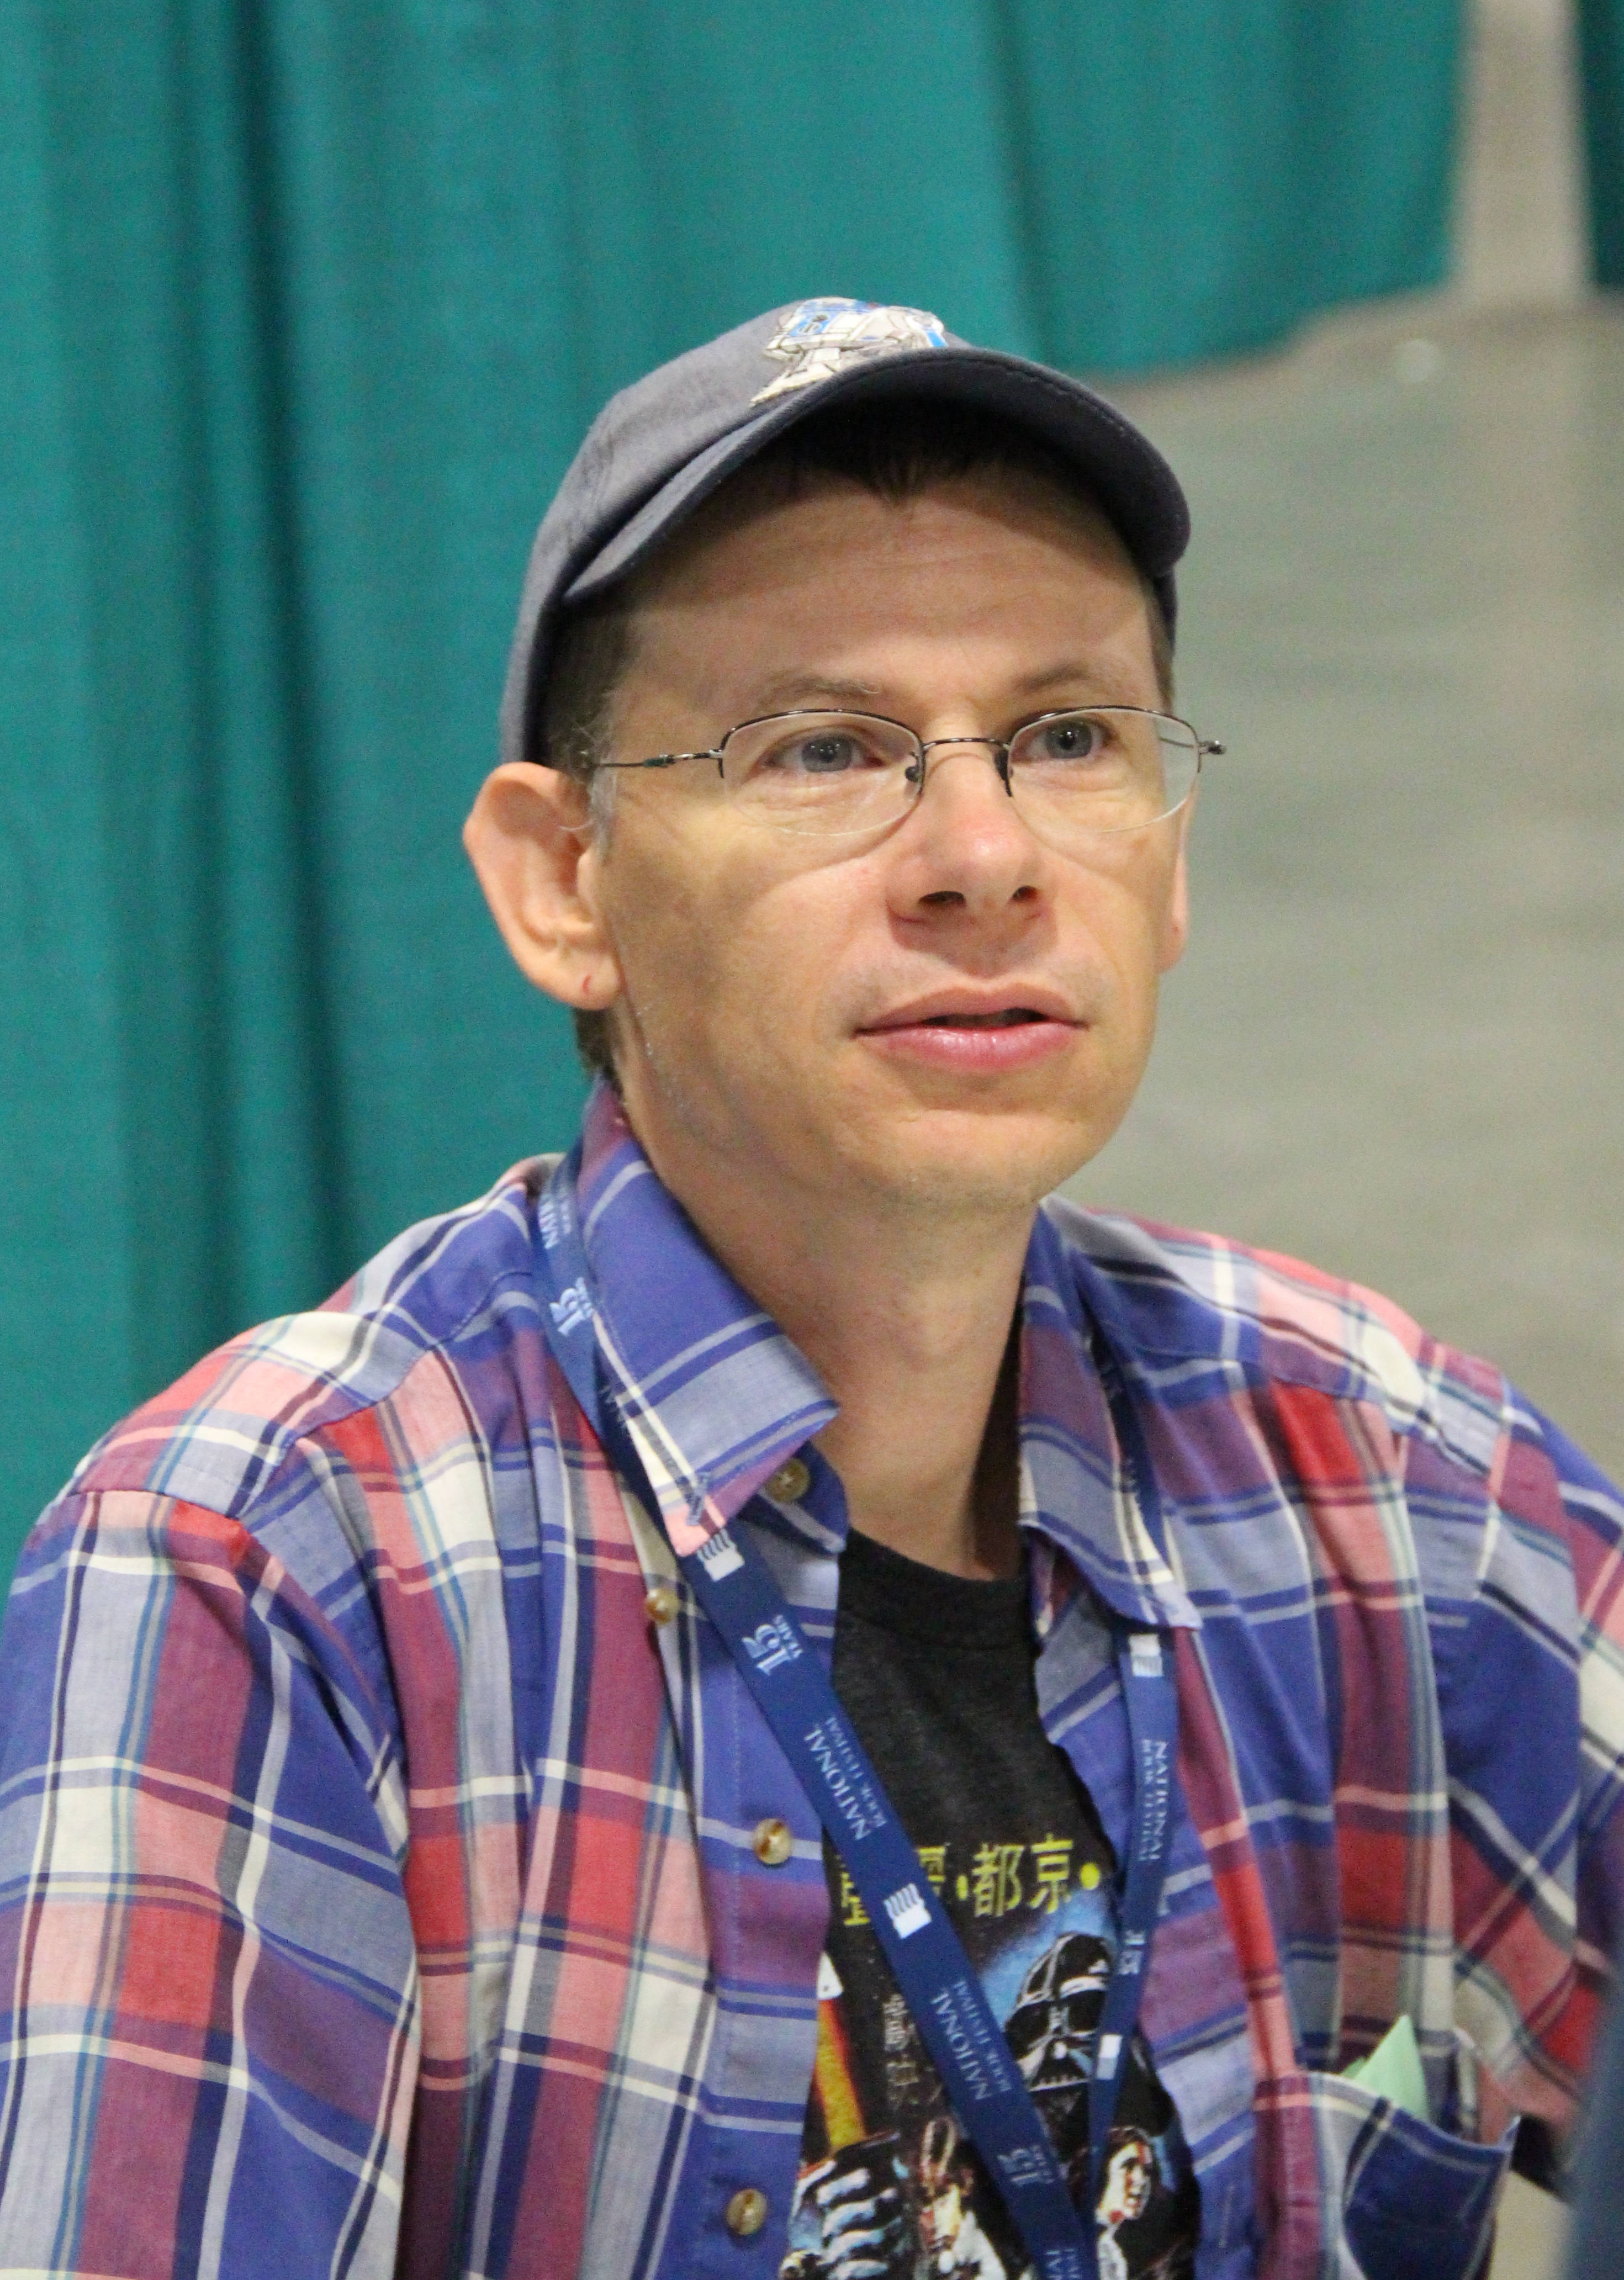 Angleberger at the 2015 National Book Festival